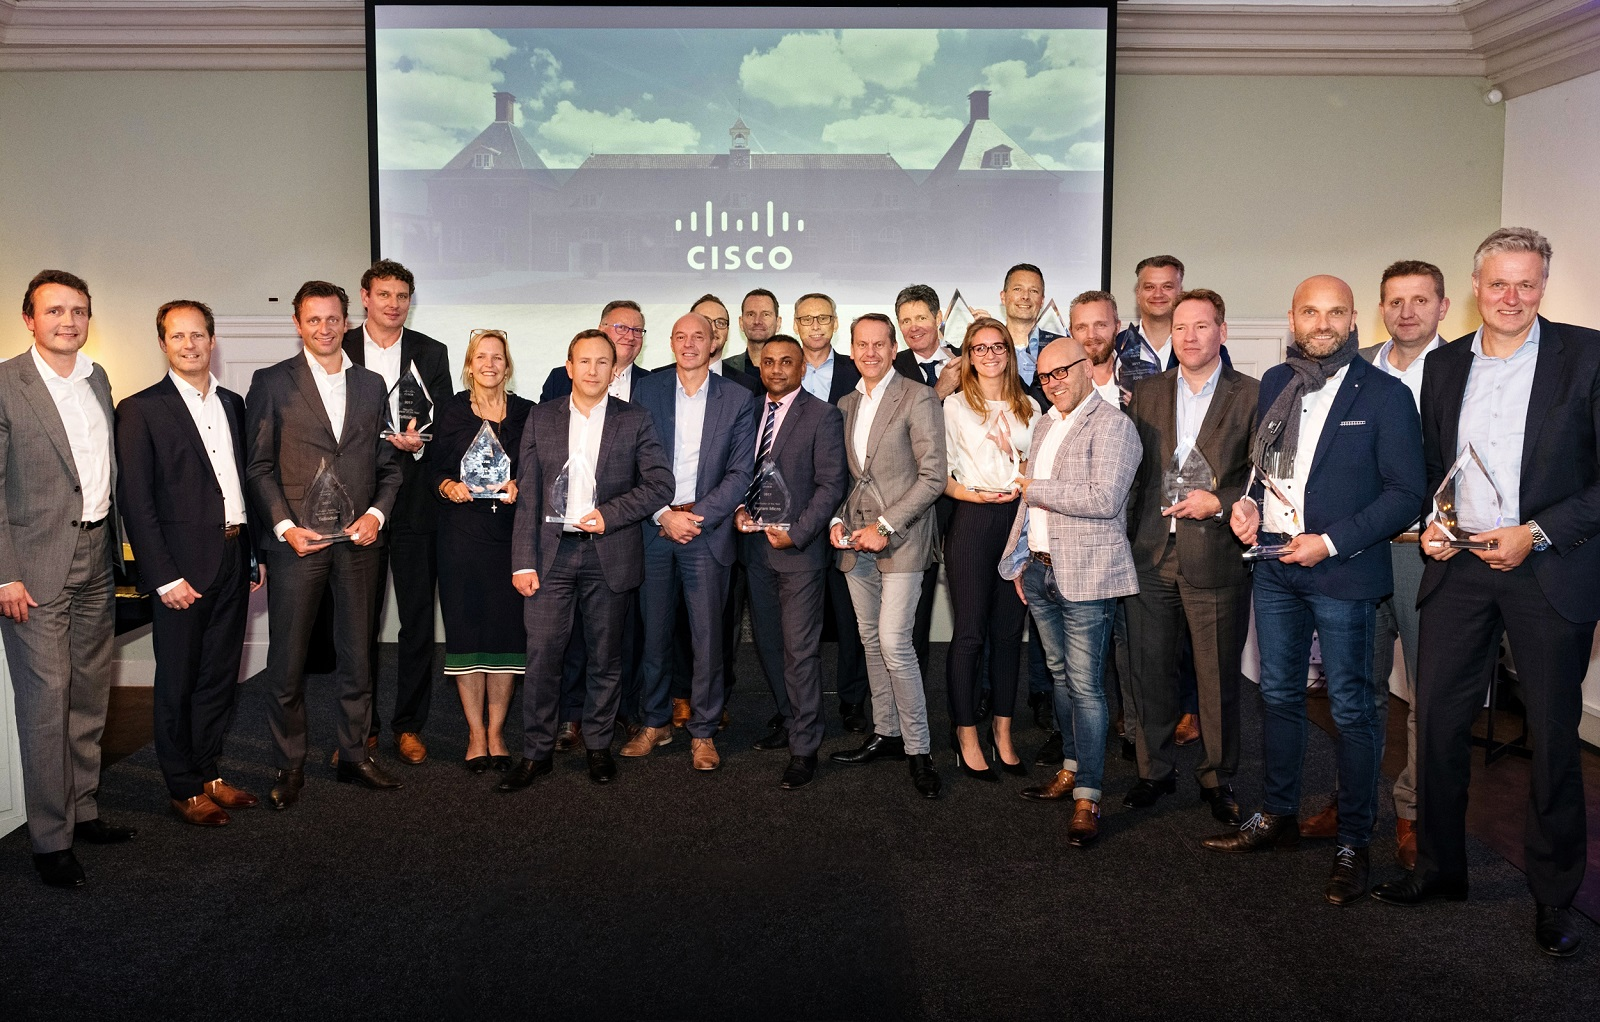 Winnaars Nederlandse Cisco Partner Awards 2017 bekend